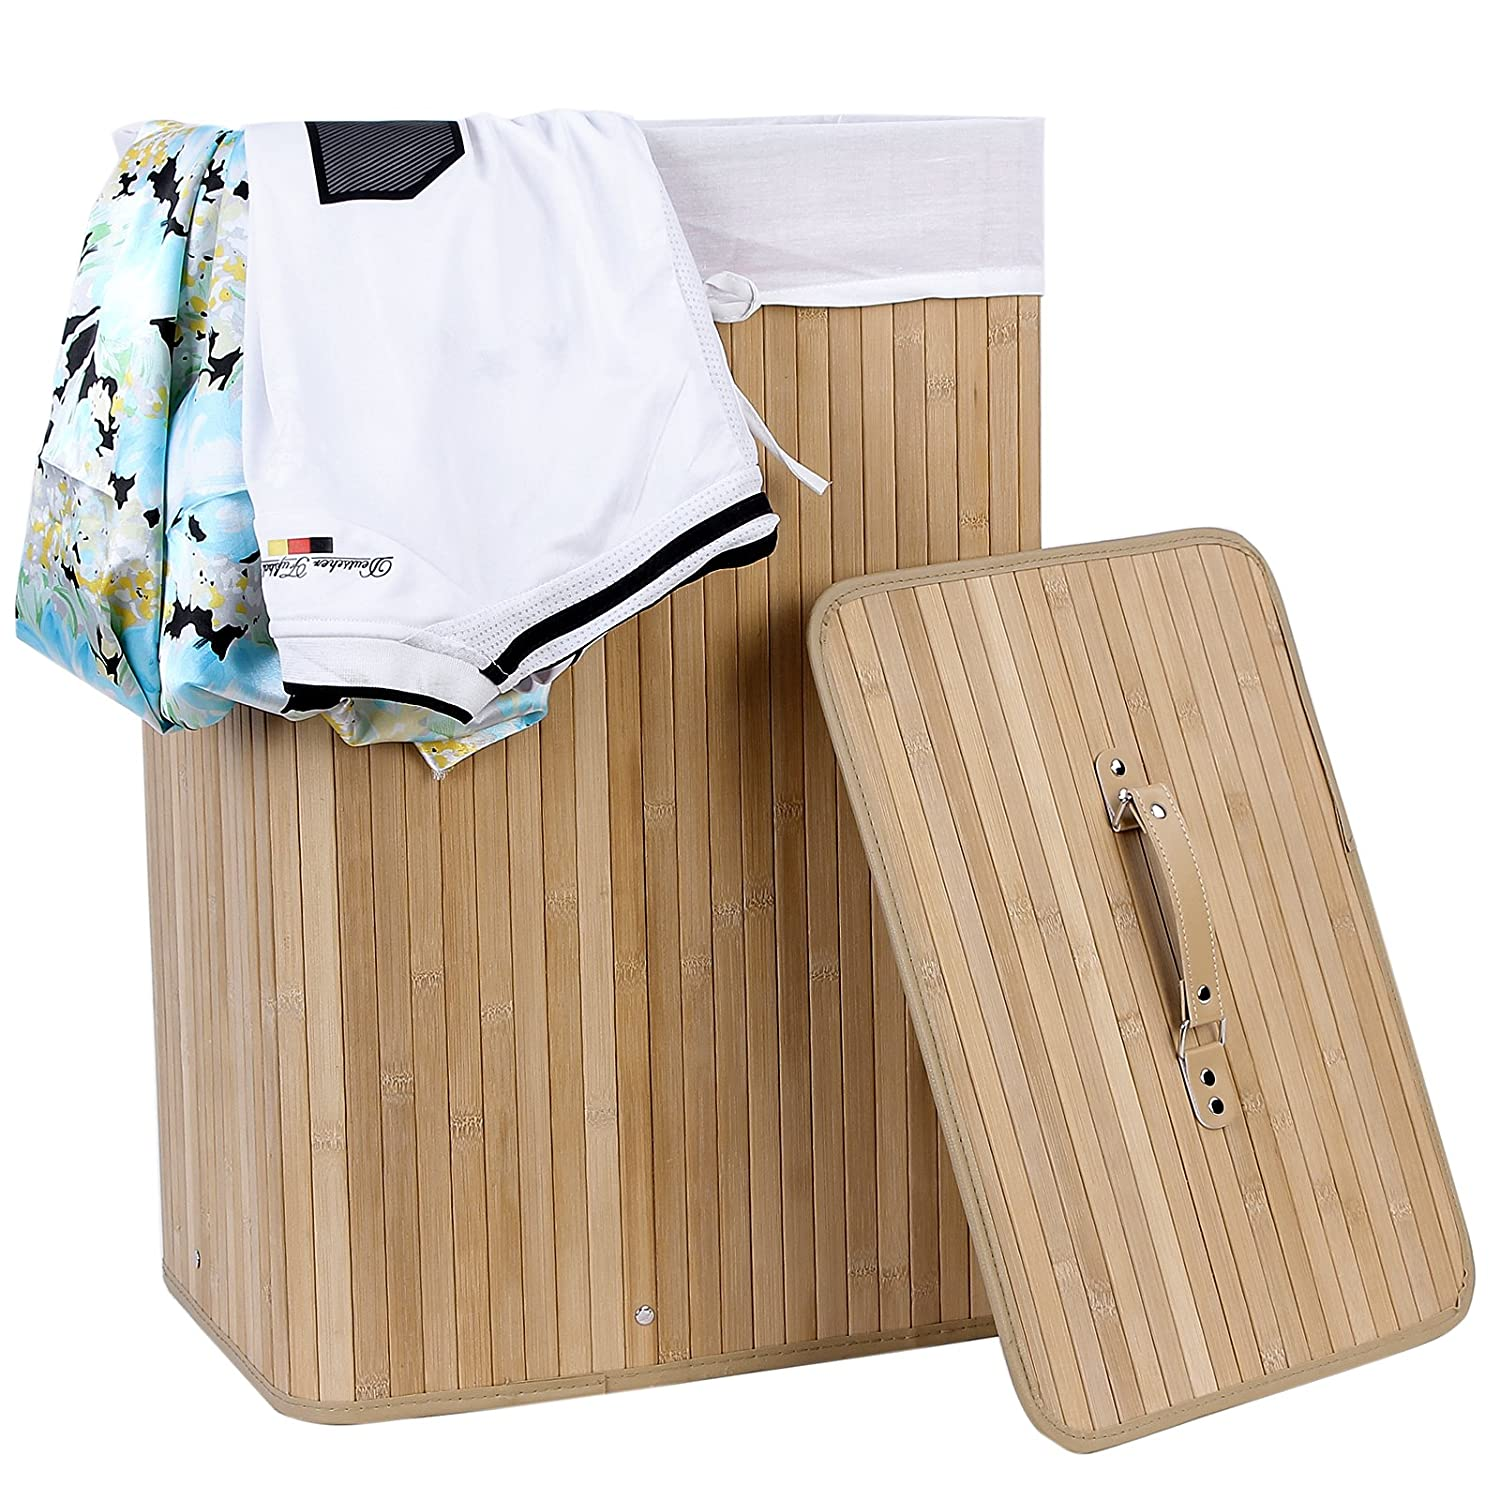 Large Folding Laundry Basket Laundry Box With Lining